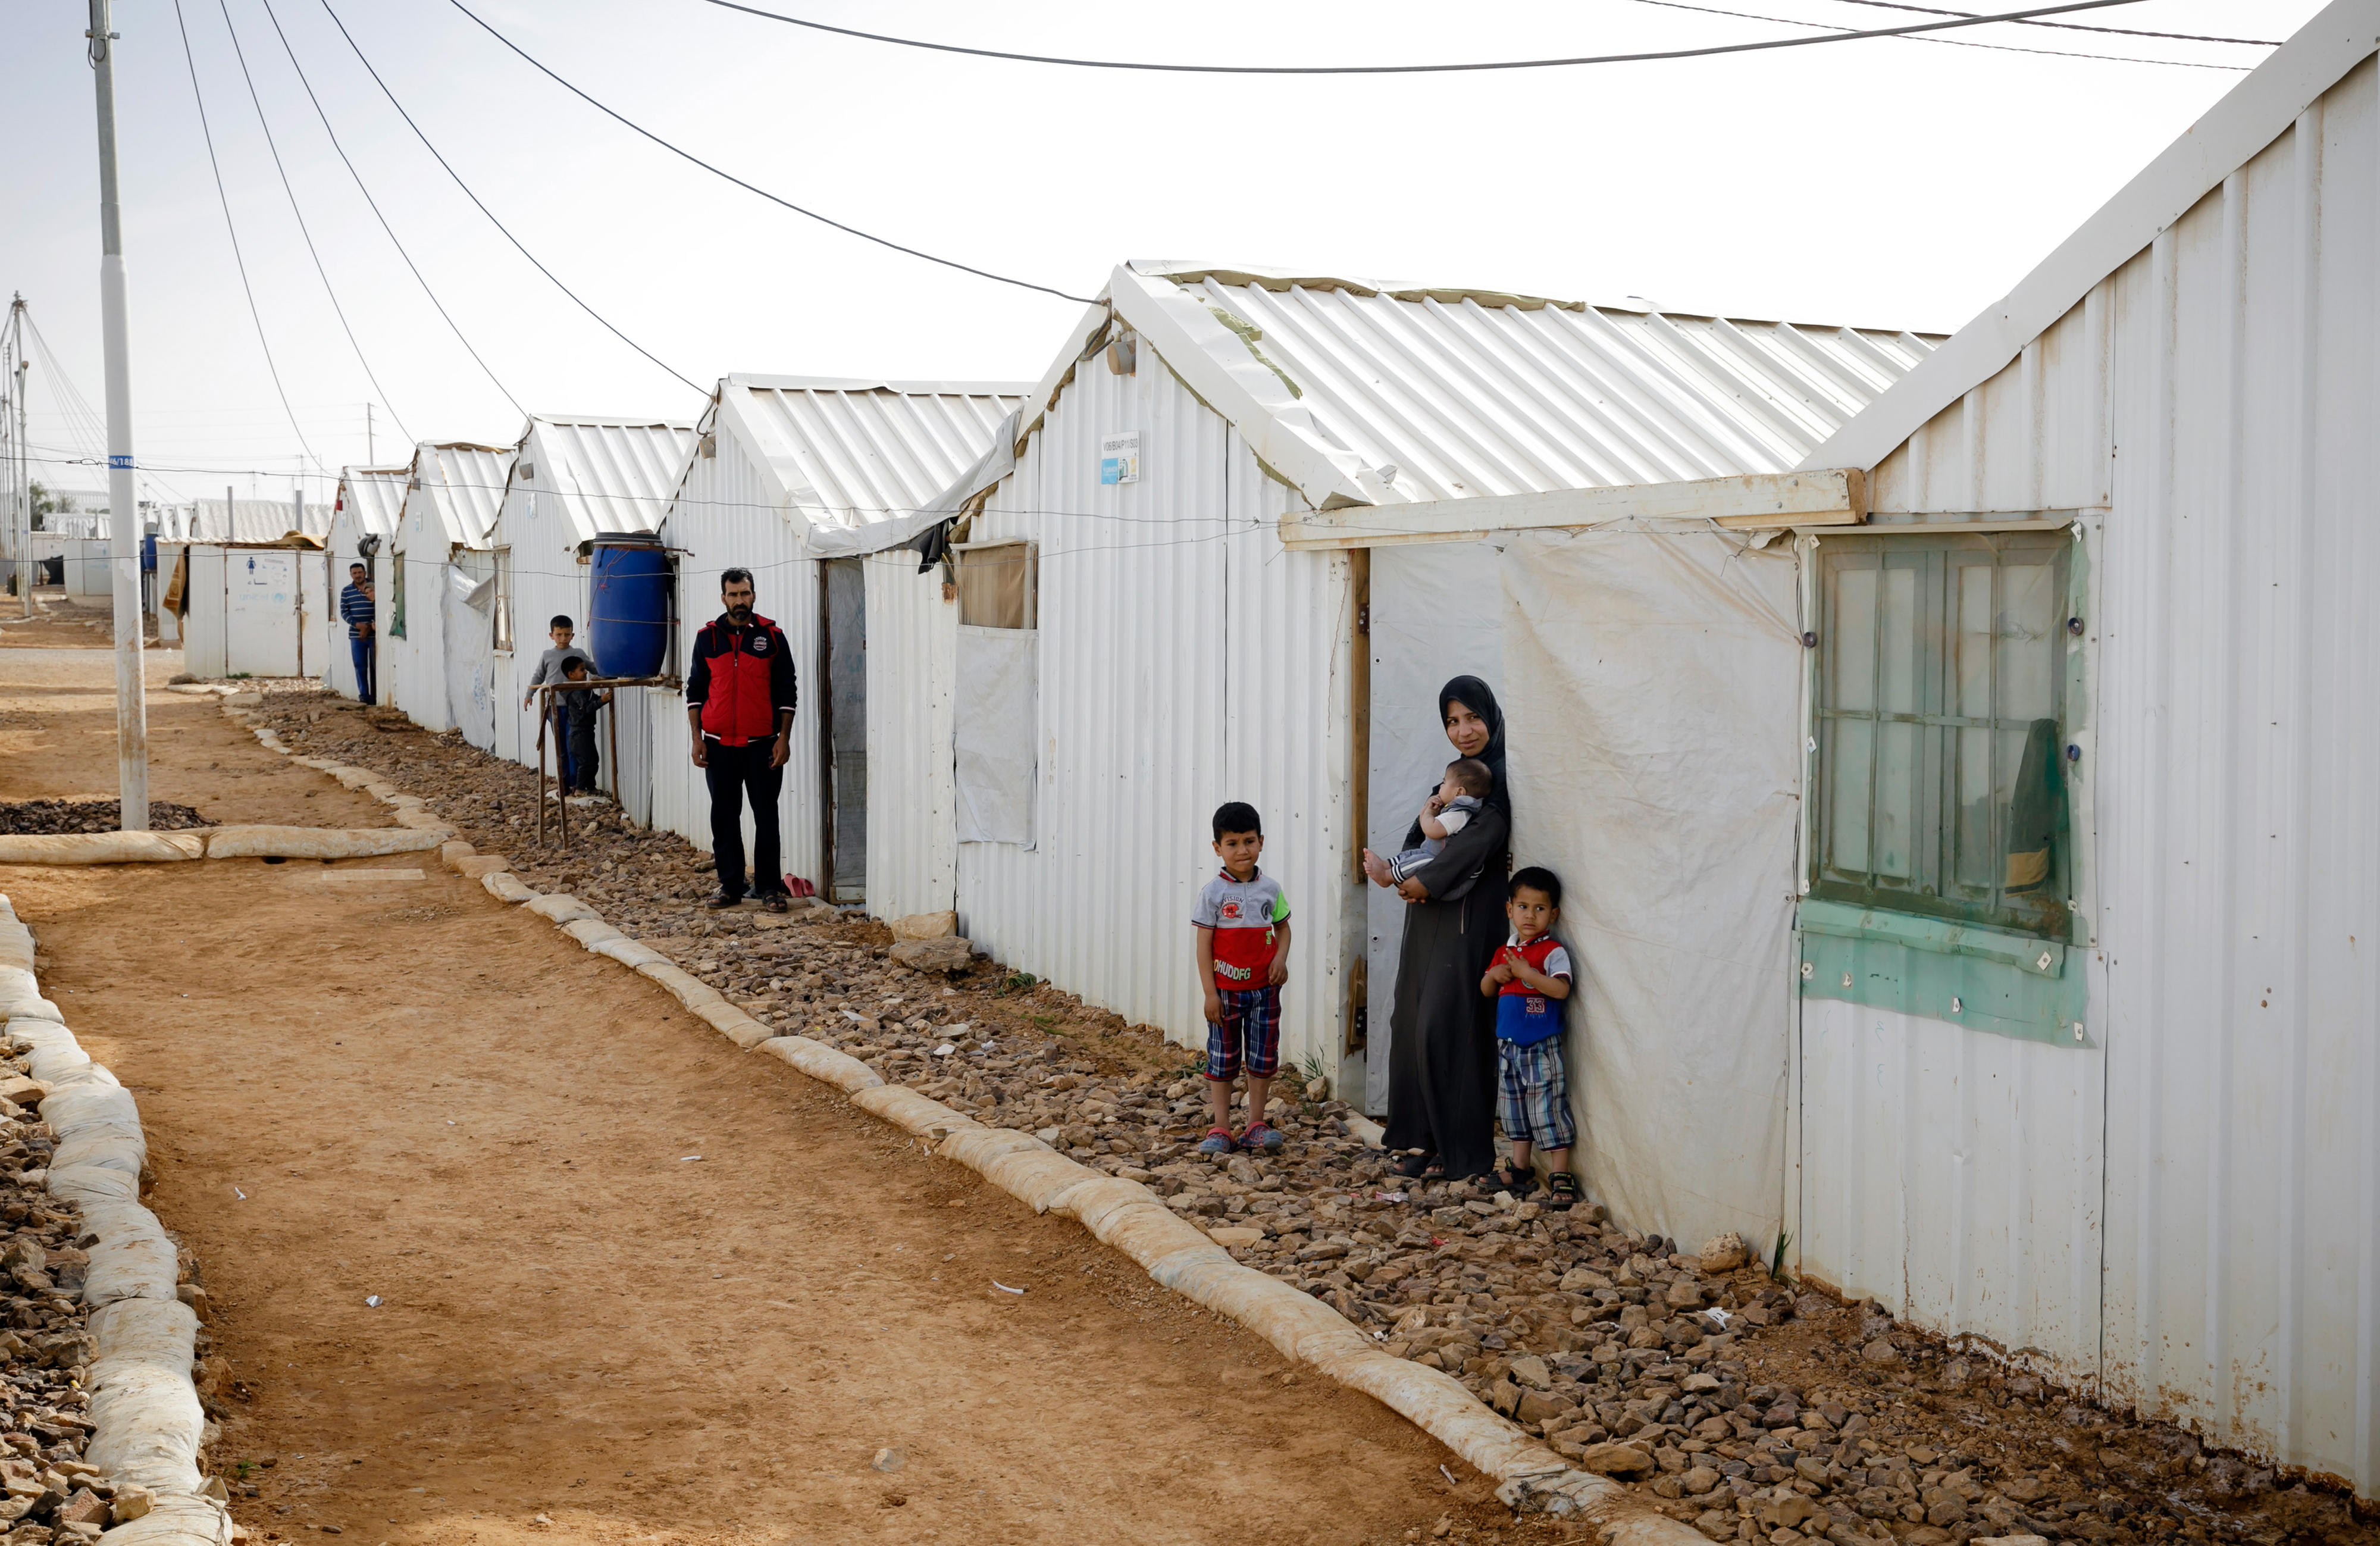 Al-Azraq refugee camp in Jordan